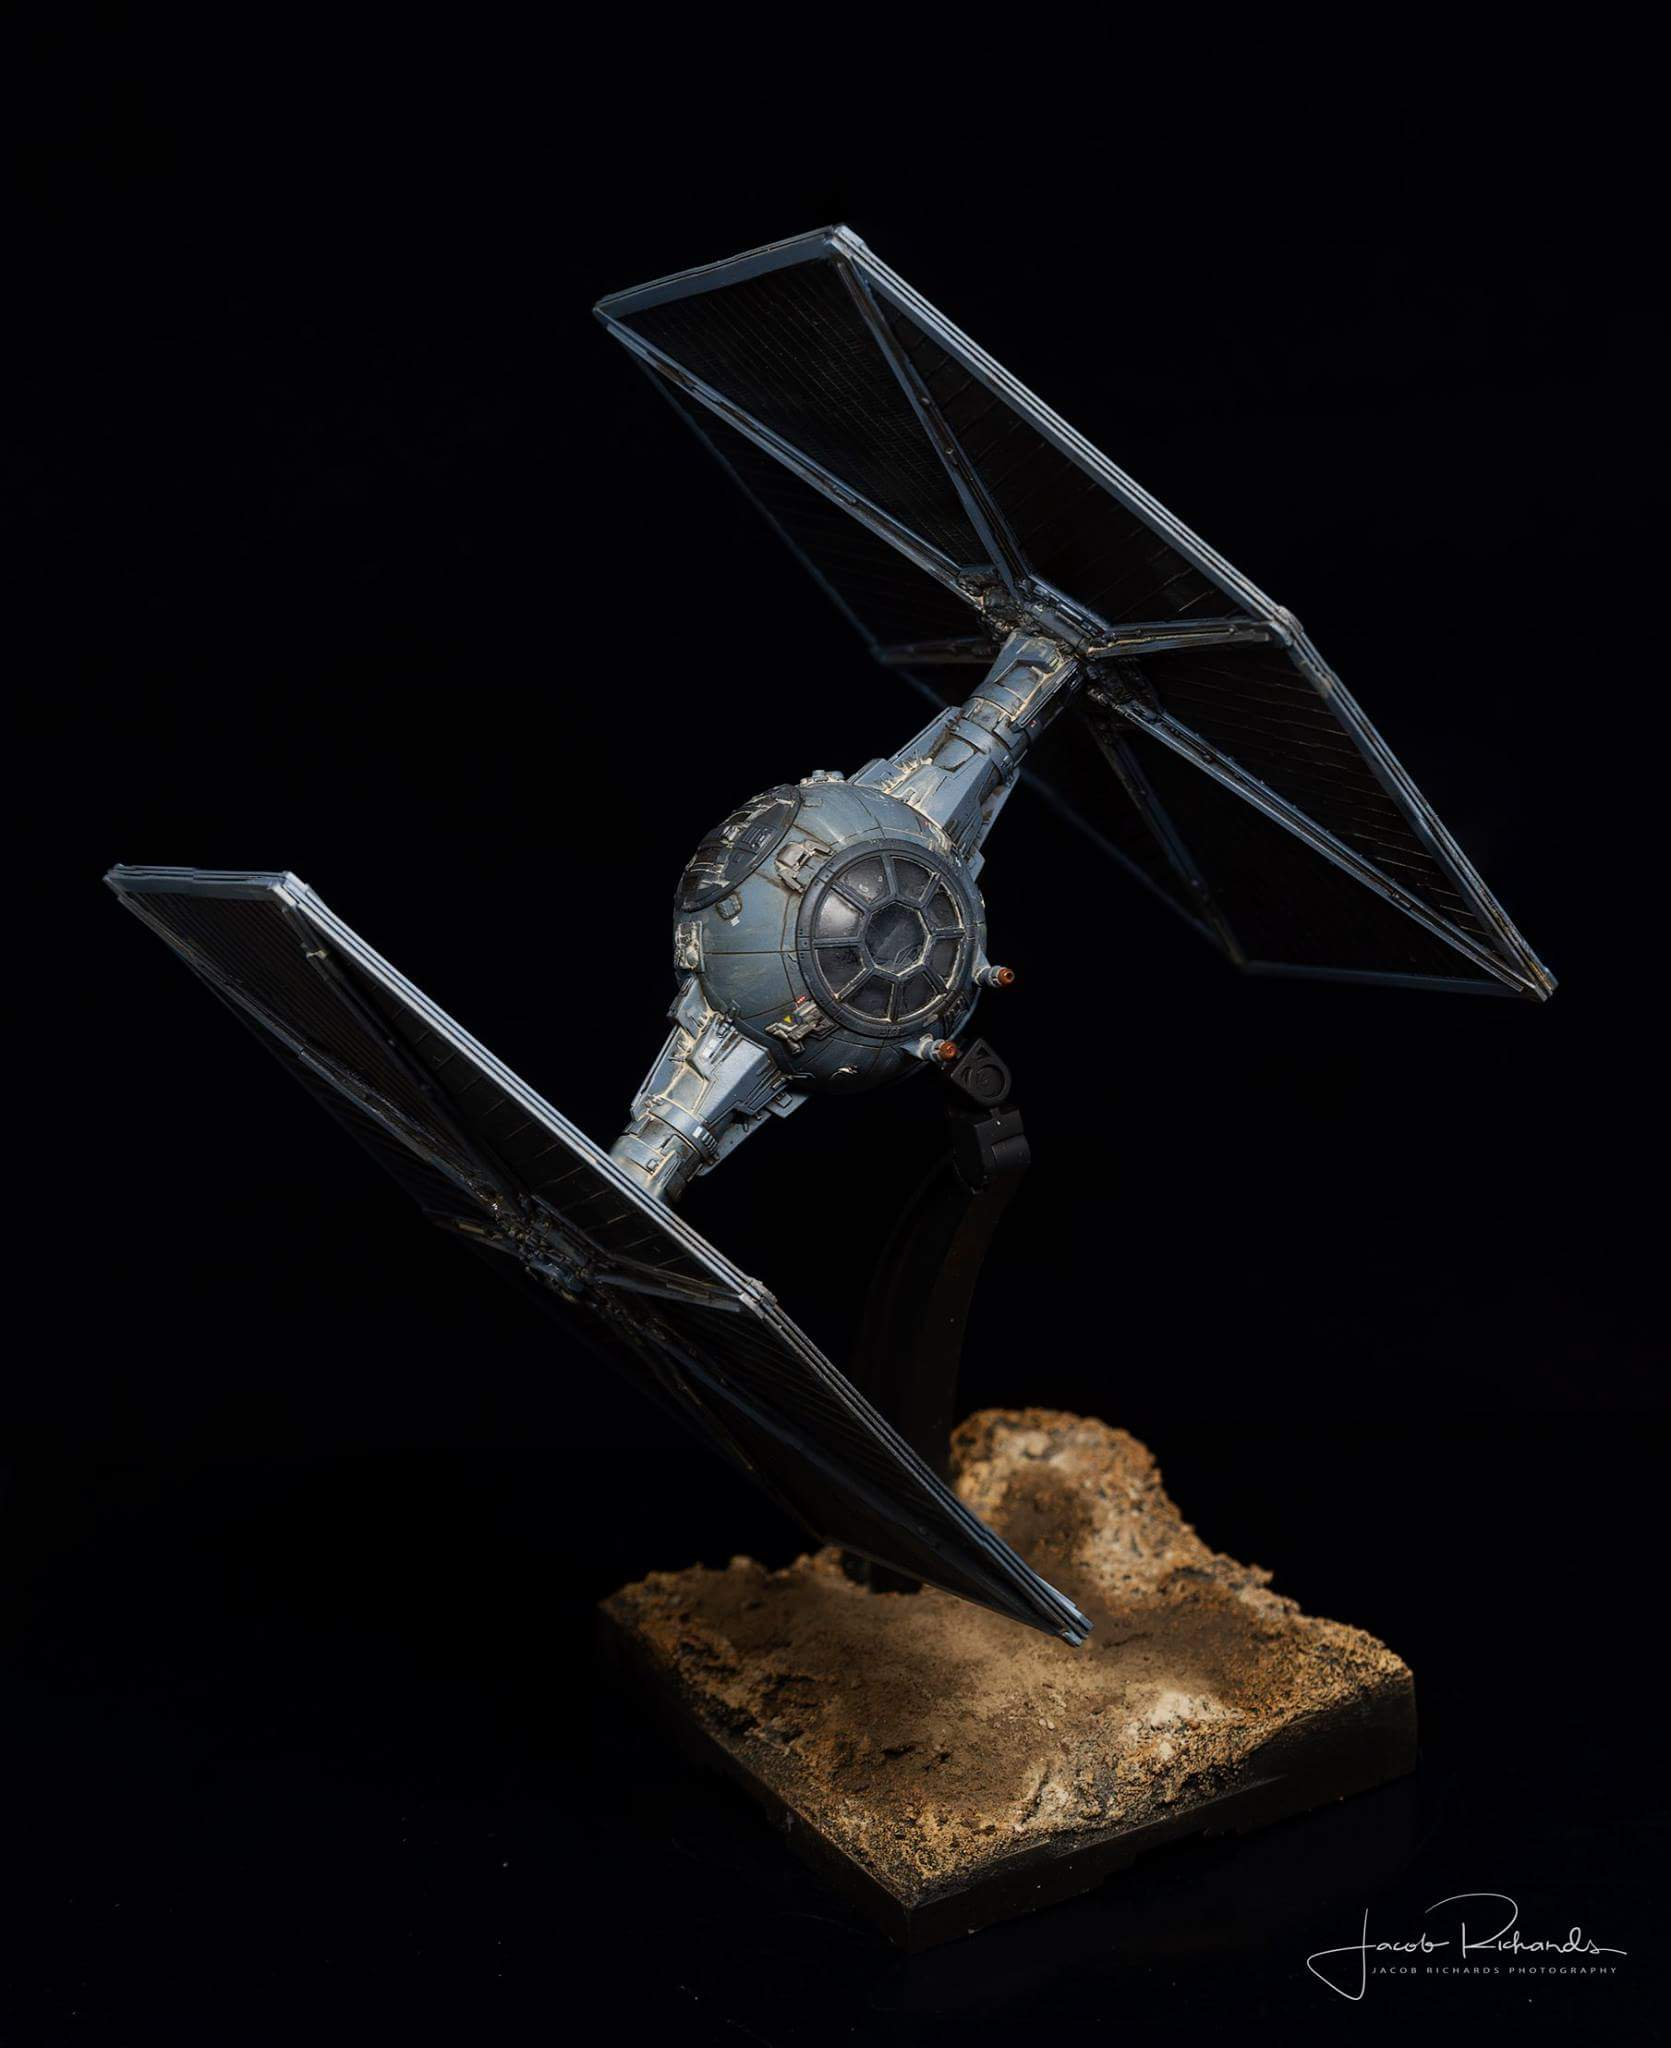 TIE Fighter Over Jakku - Shot 1